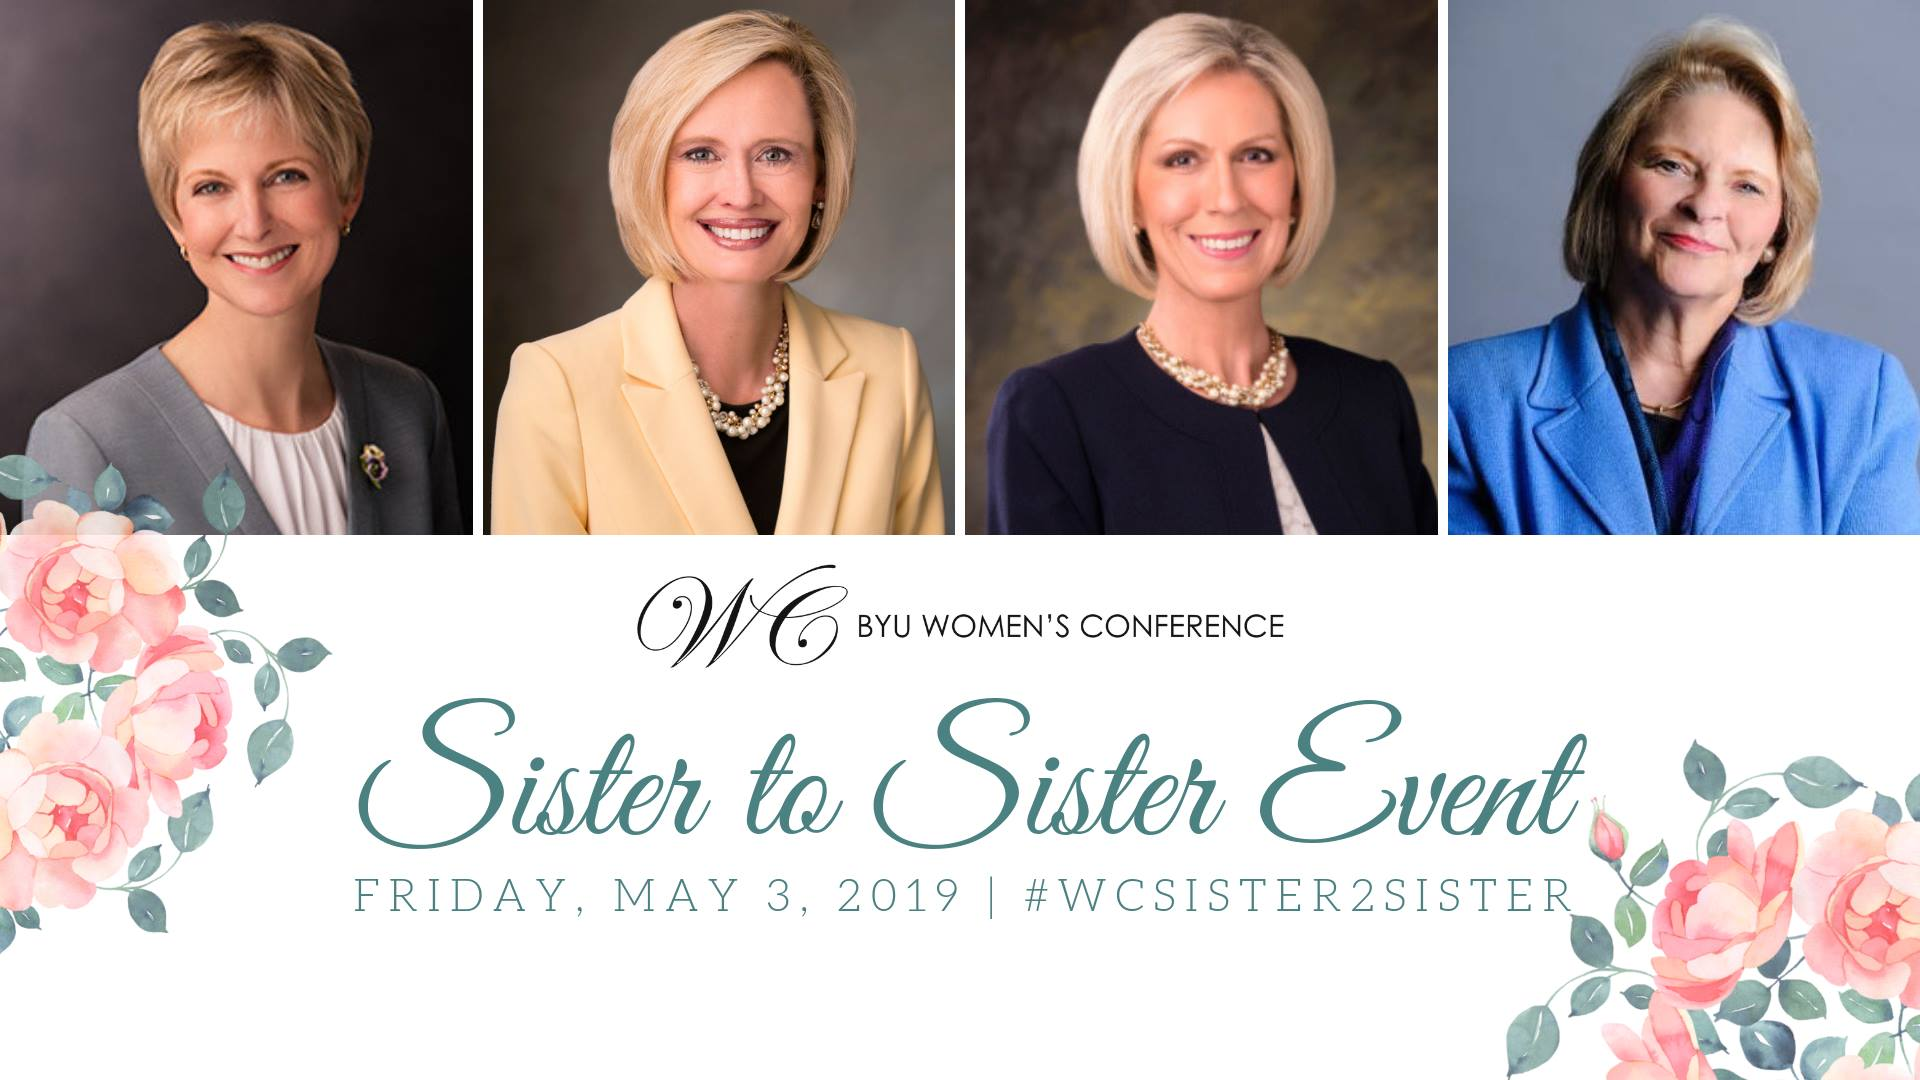 The first Sister-to-Sister event will be held on May 3, 2019, in the BYU Marriott Center. Sister Jean B. Bingham, Sister Bonnie H. Cordon and Sister Joy D. Jones will answer questions during the event, which will be moderated by Sheri Dew.